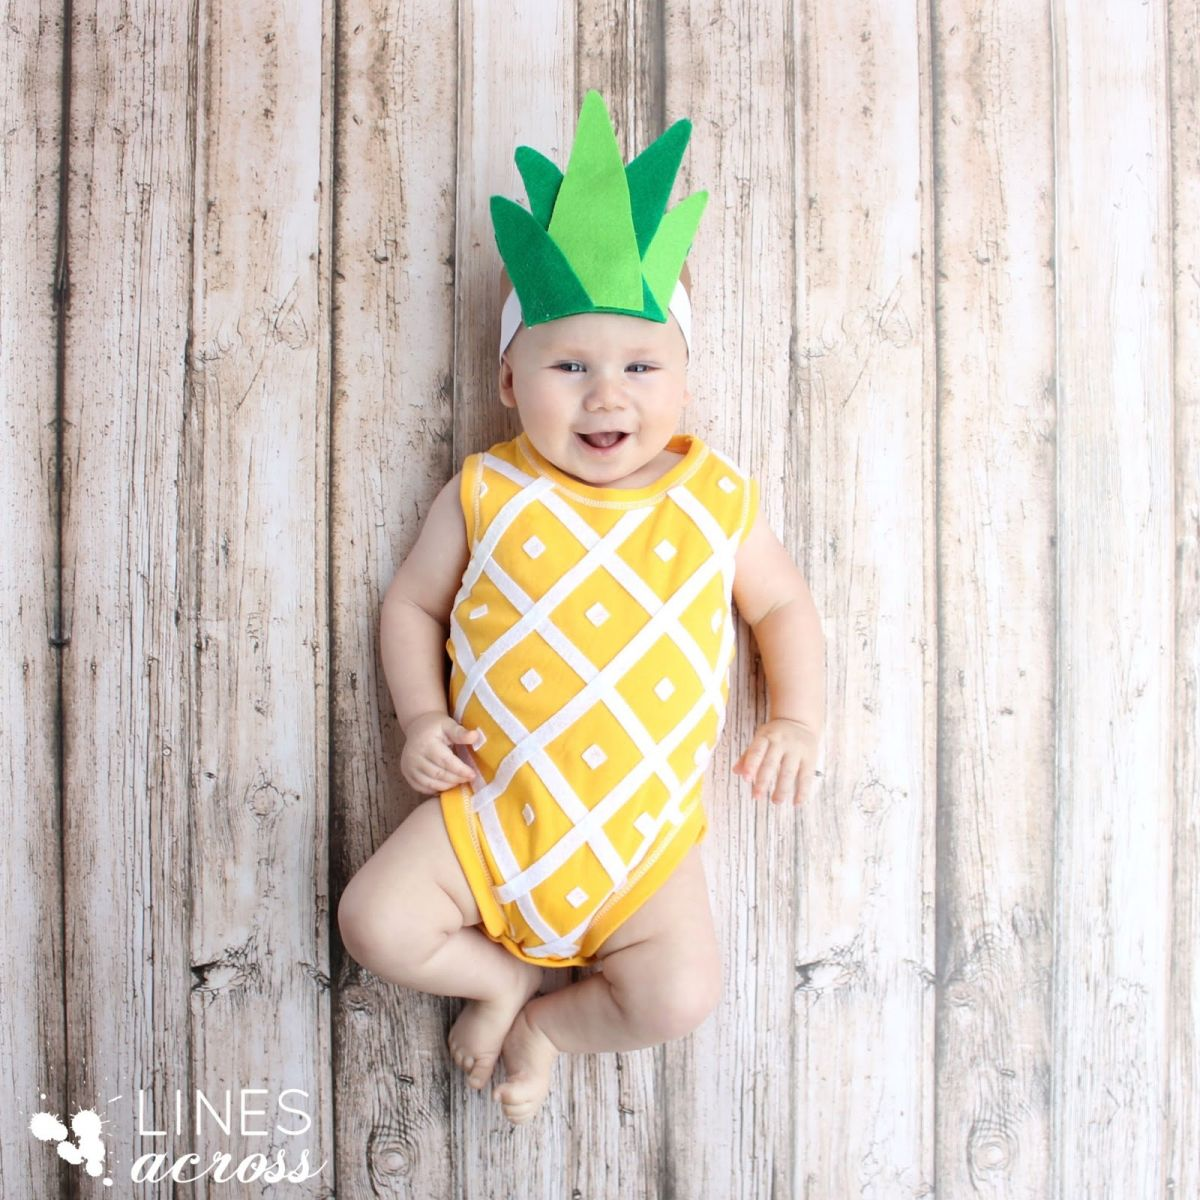 ... and your baby will be styling this Halloween! Check out this DIY No Sew Pineapple Onesie for a quick and easy Halloween costume for your little one.  sc 1 st  Lattes Lilacs u0026 Lullabies & 25 Adorable Halloween Costumes For Babies - Lattes Lilacs u0026 Lullabies